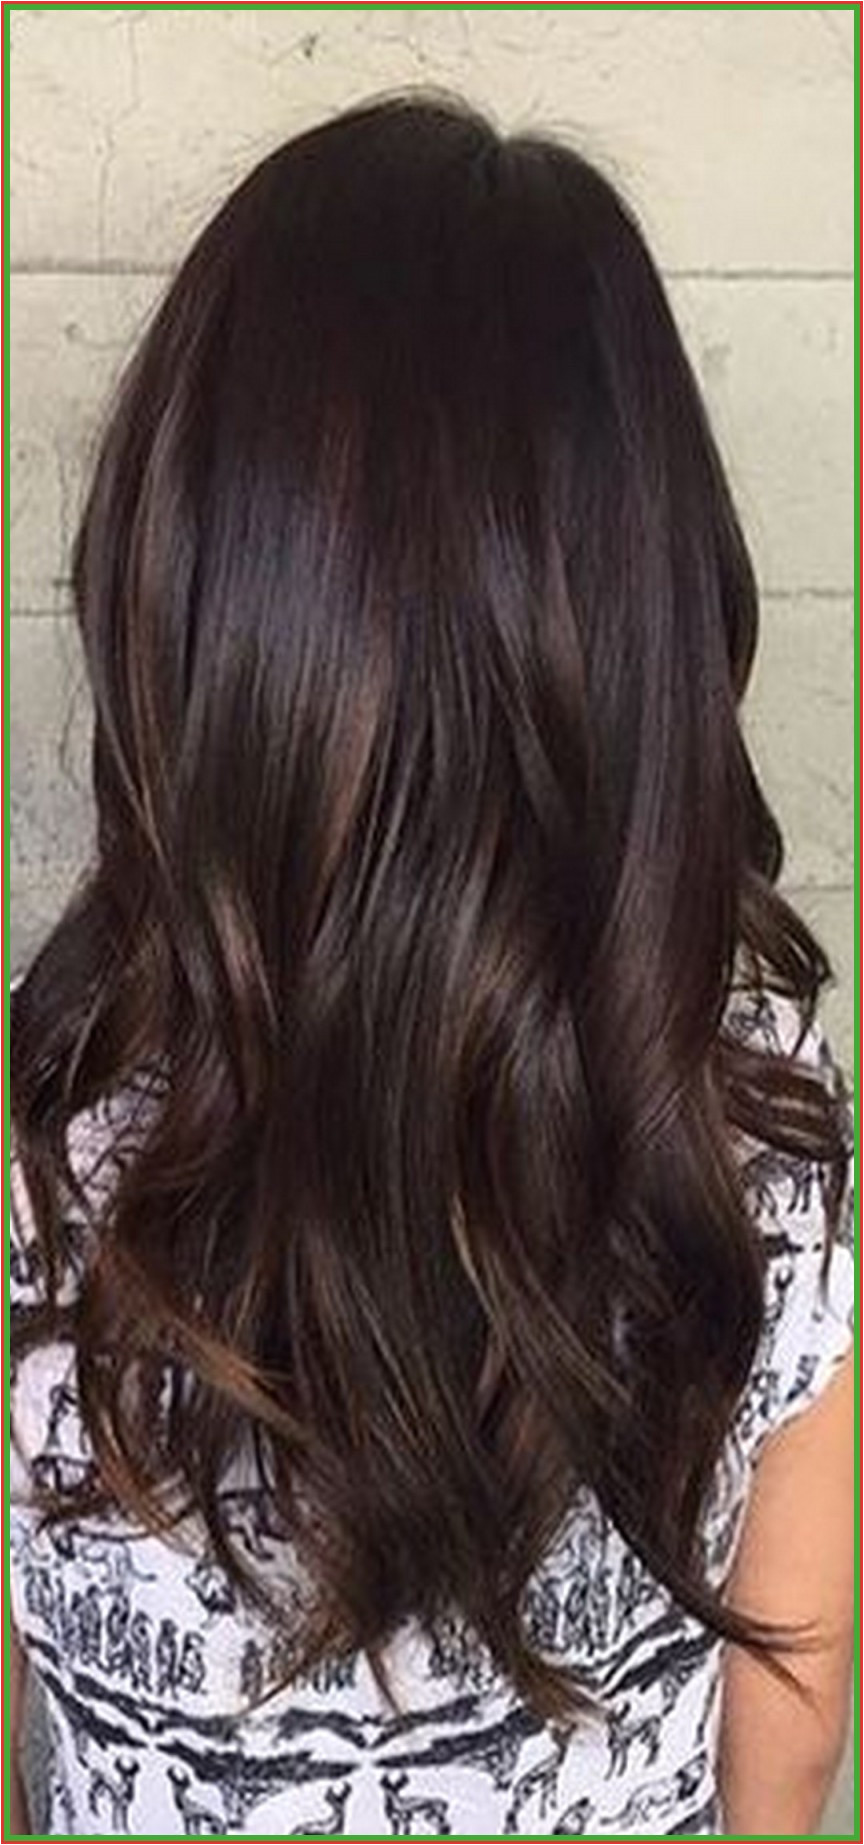 Hair Oder Layer Hair Style Layered Haircut for Long Hair 0d Improvestyle at Hair